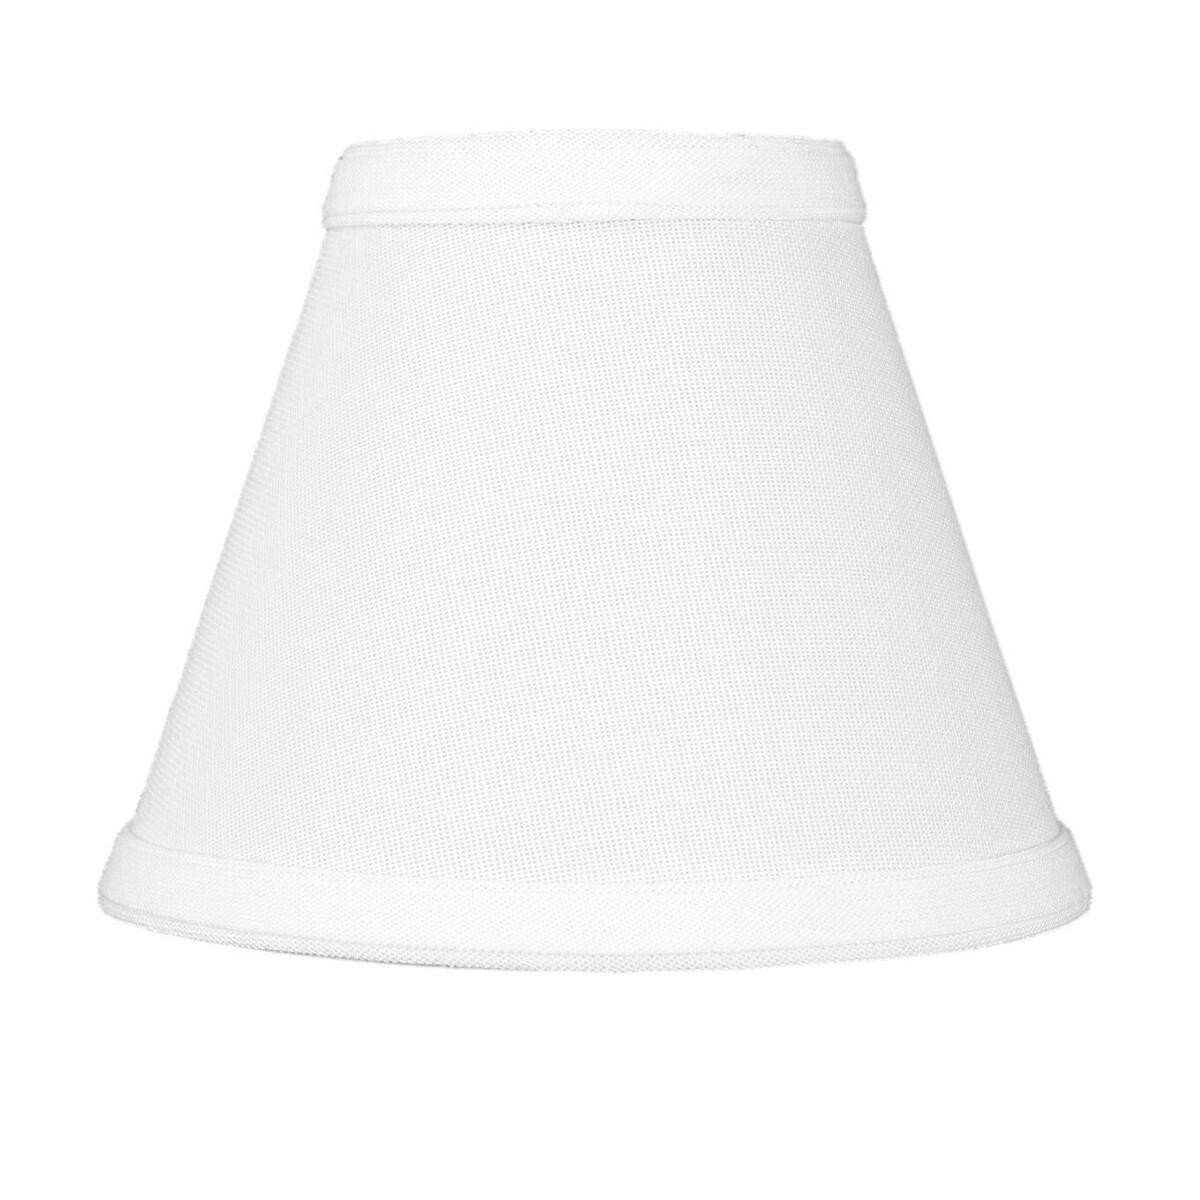 3x6x5 Chandelier White Linen Clip-On Lampshade By Home Concept - Perfect for chandeliers, foyer lights, and wall sconces -Small, White